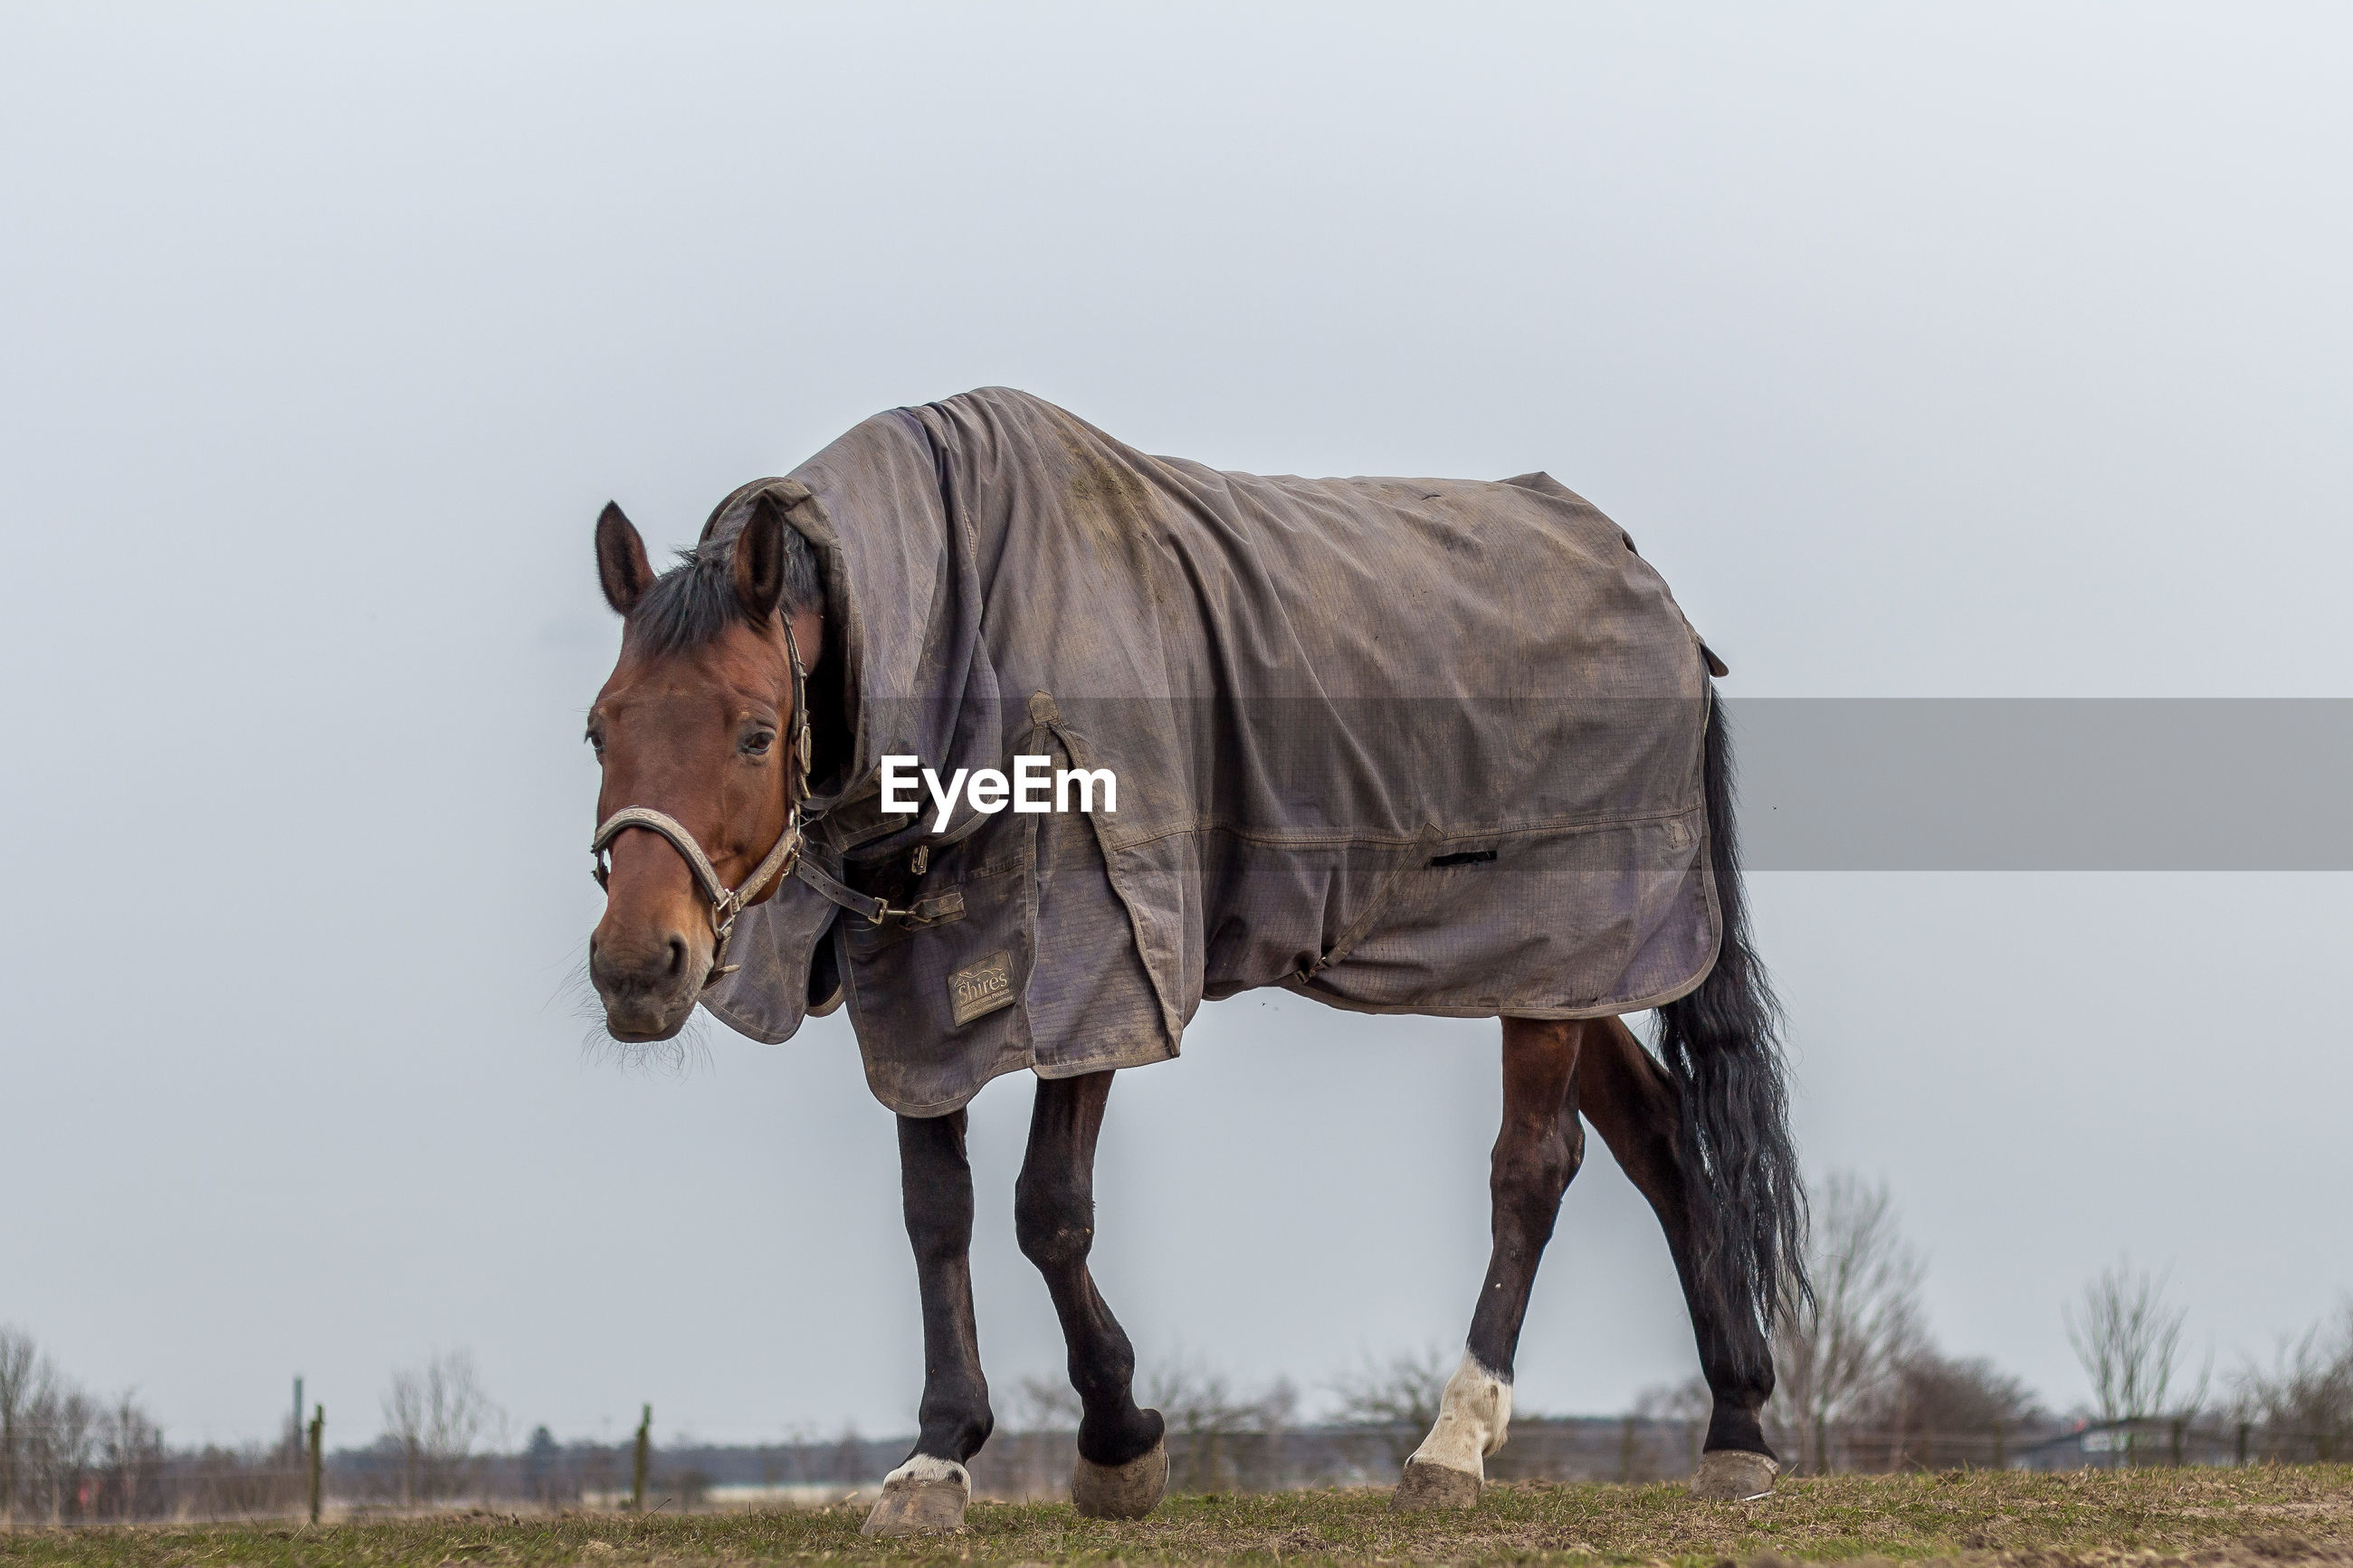 Horse with blanket walking on field against sky